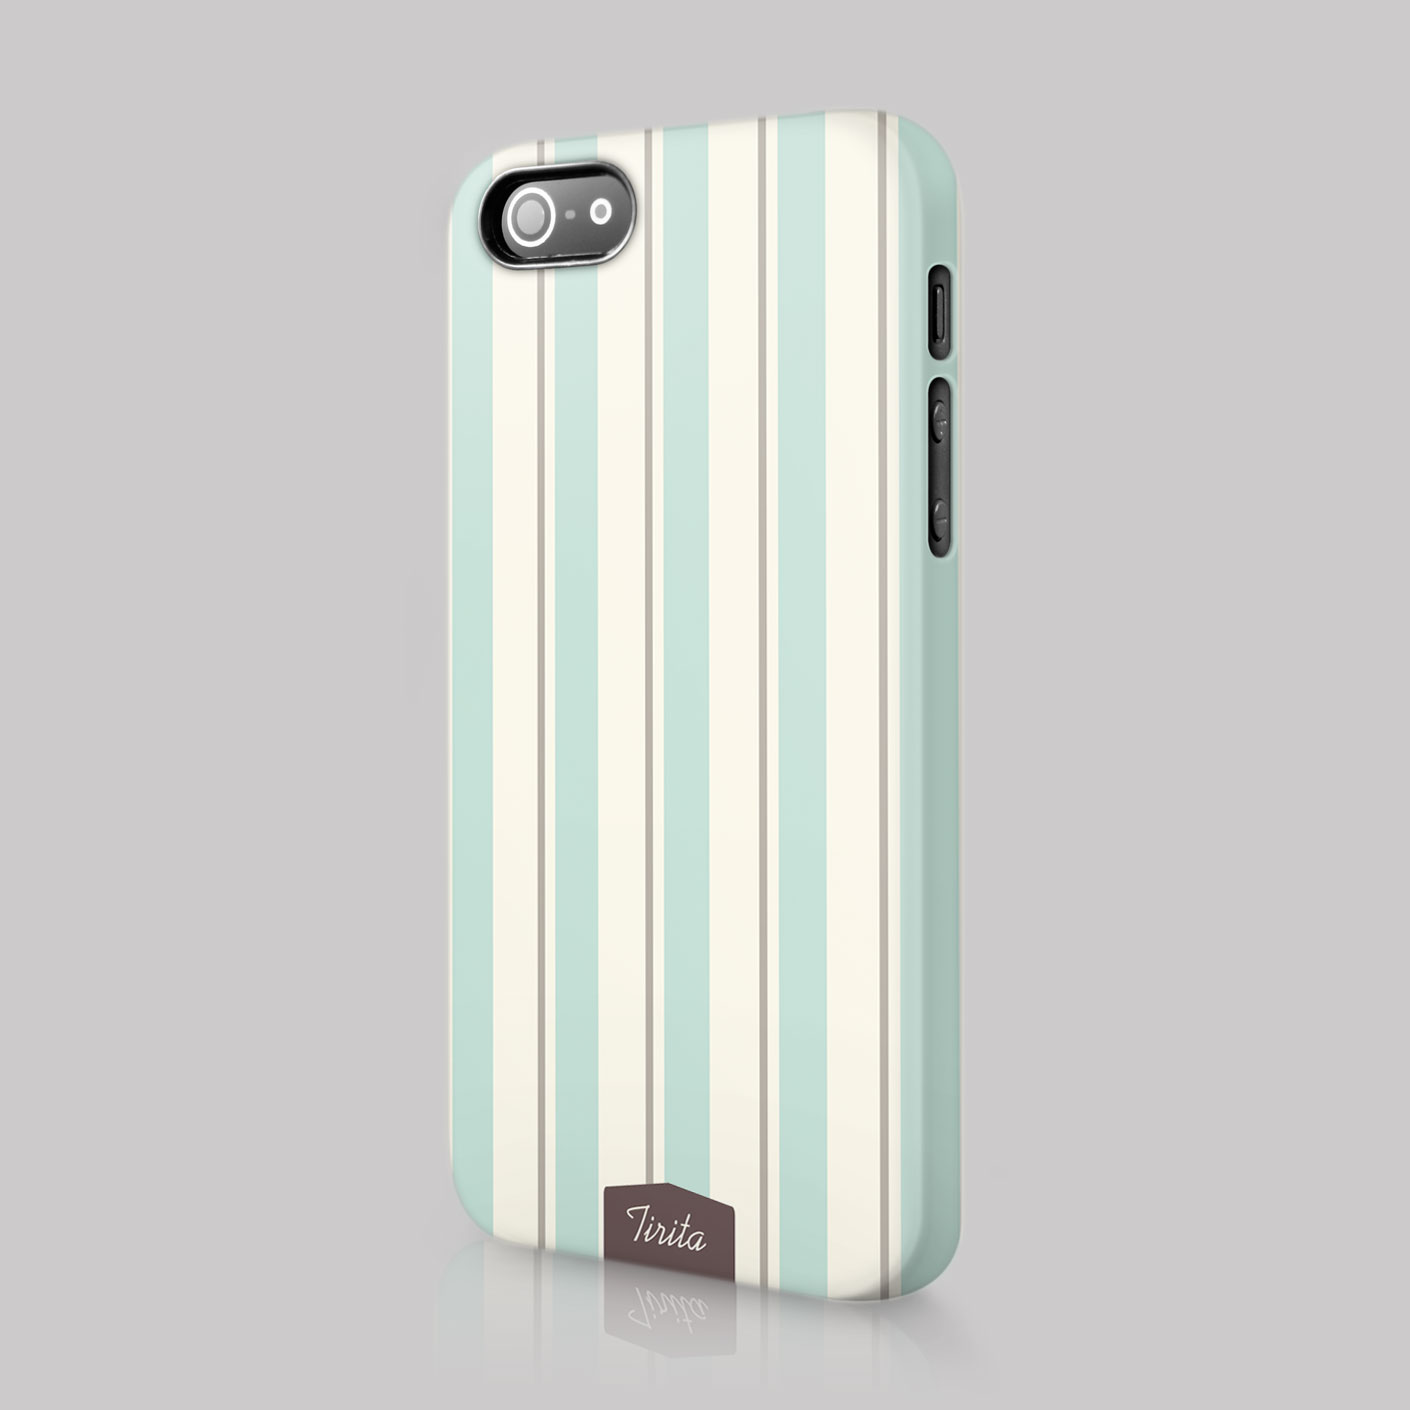 Tirita-Lines-Shabby-Chic-Striped-Case-Hard-Cover-For-iPhone-4-5-6-7-amp-SE